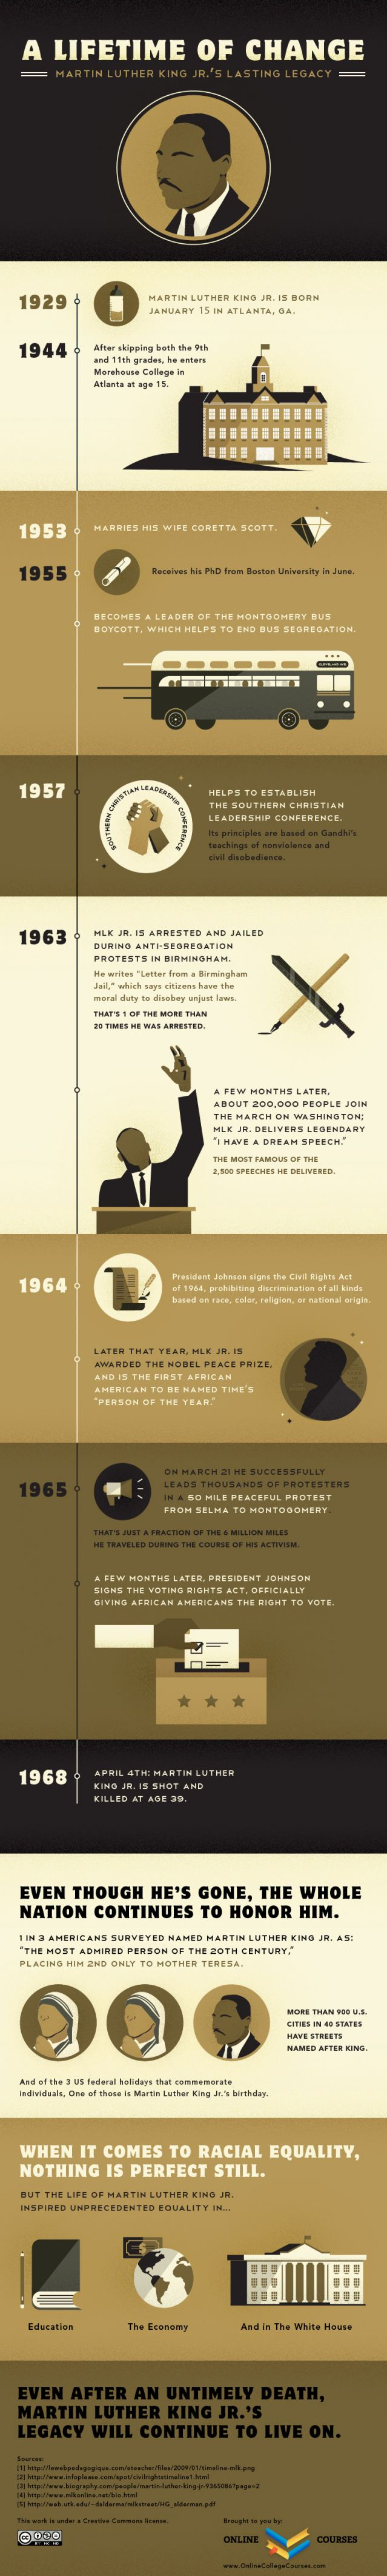 Infographic, Martin Luther King, Jr. Timeline